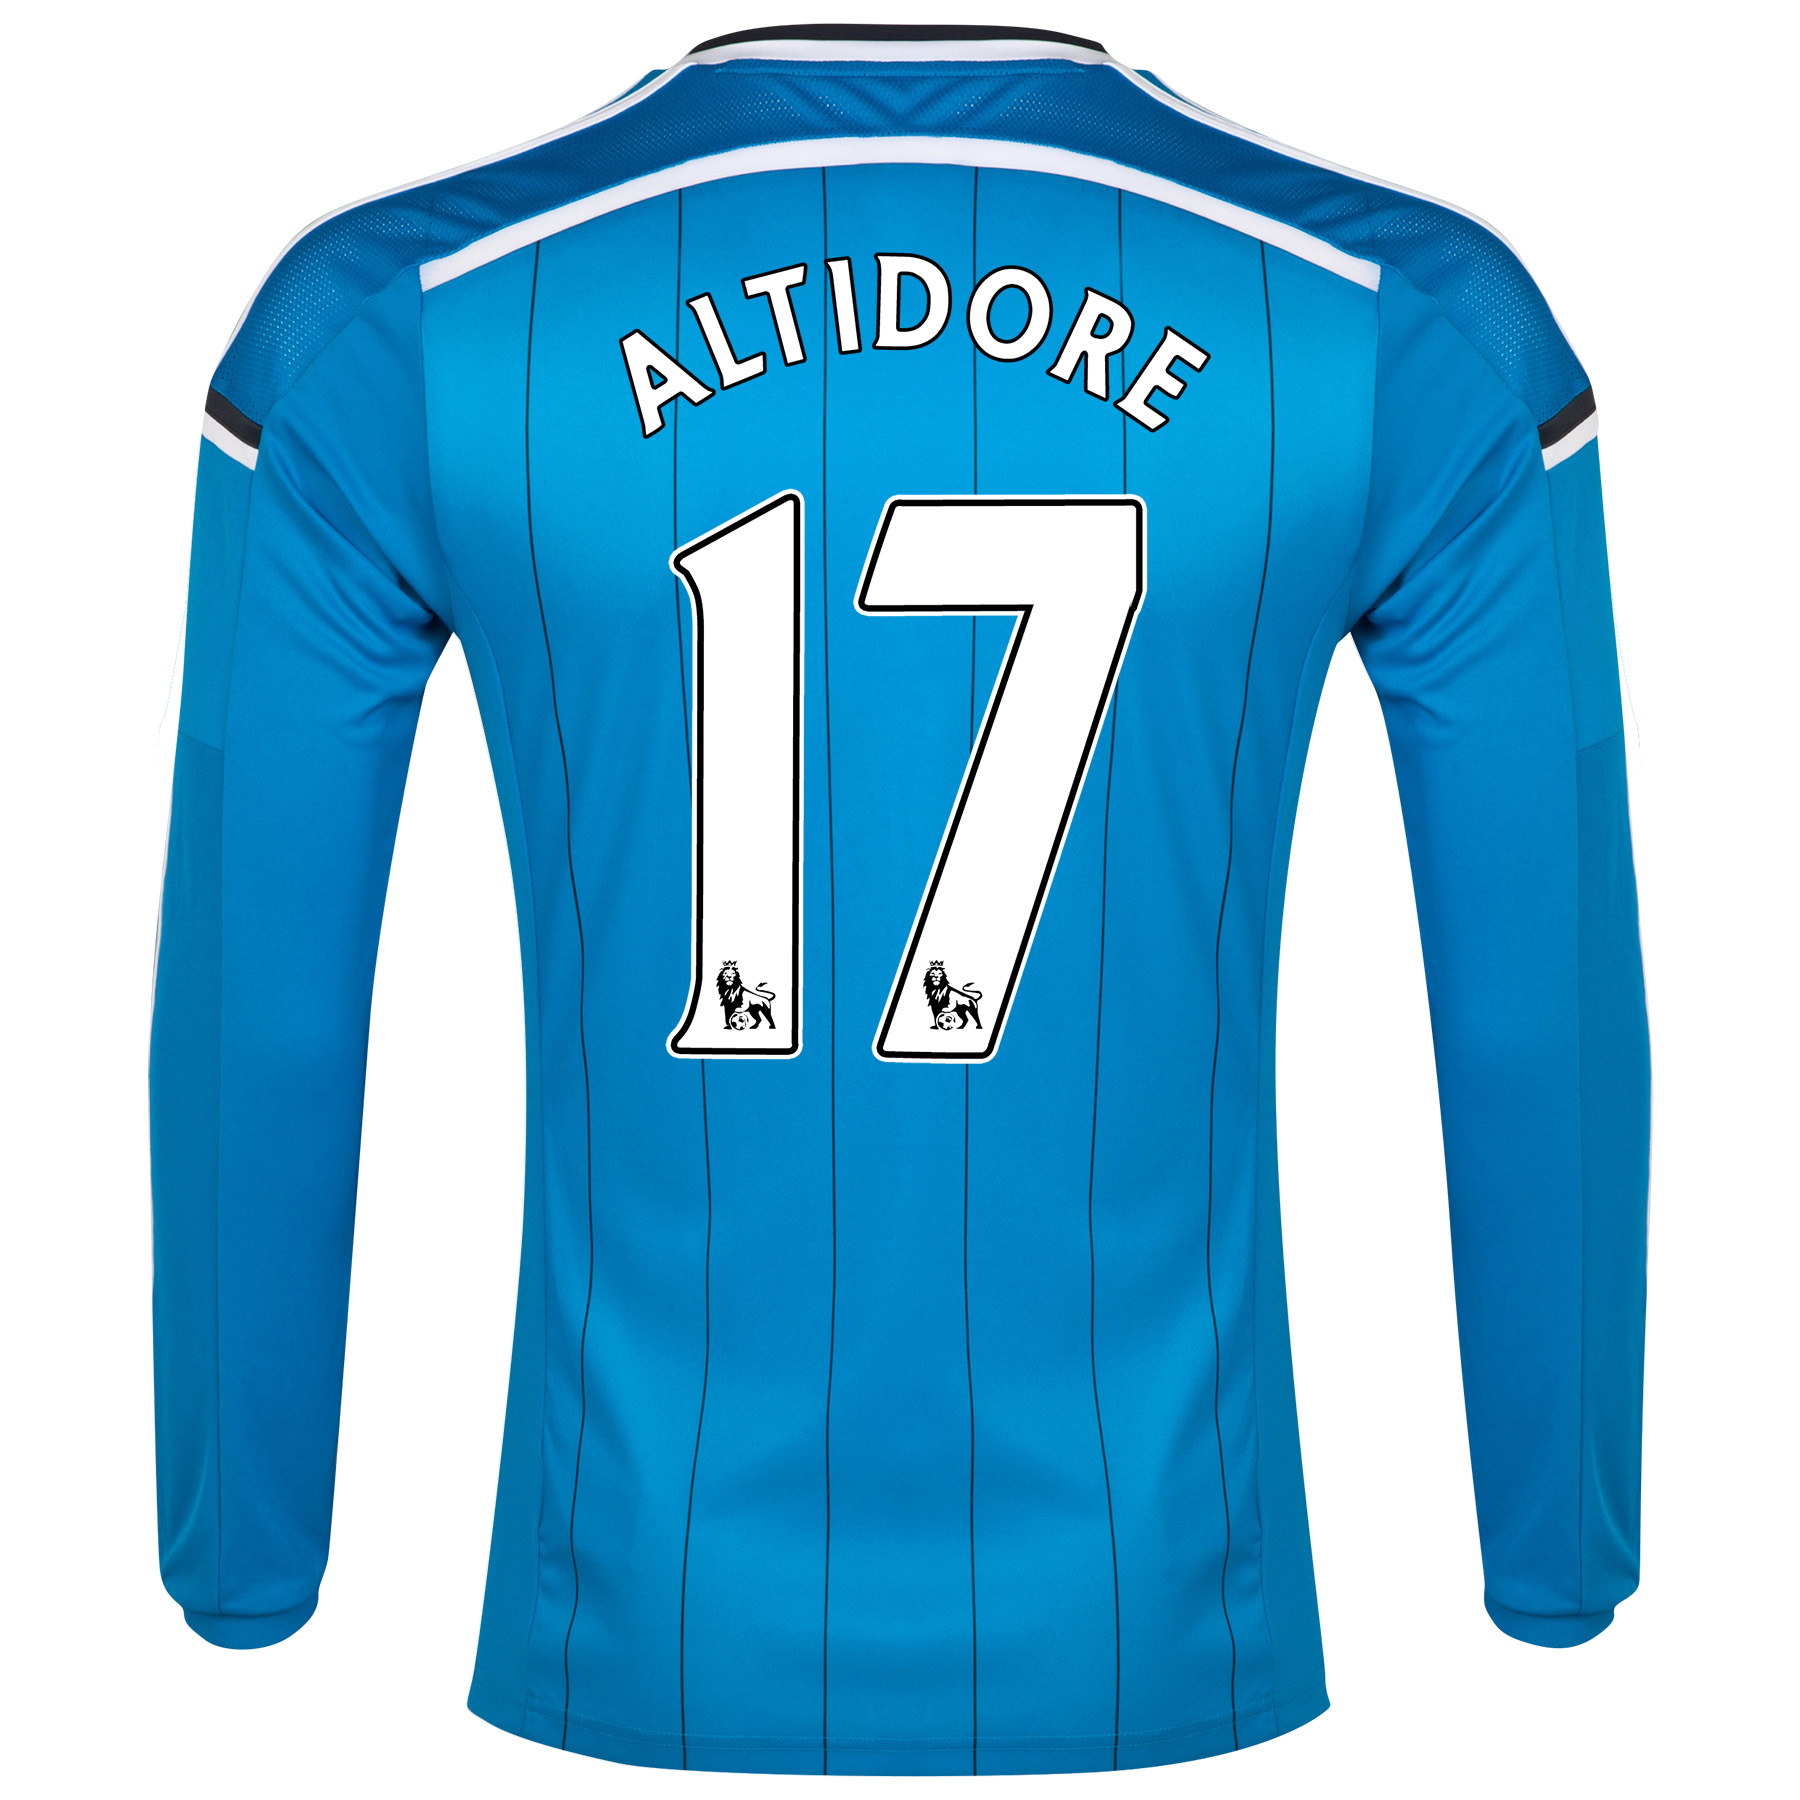 Sunderland Away Shirt 2014/15 - Long Sleeved Lt Blue with Altidore 17 printing